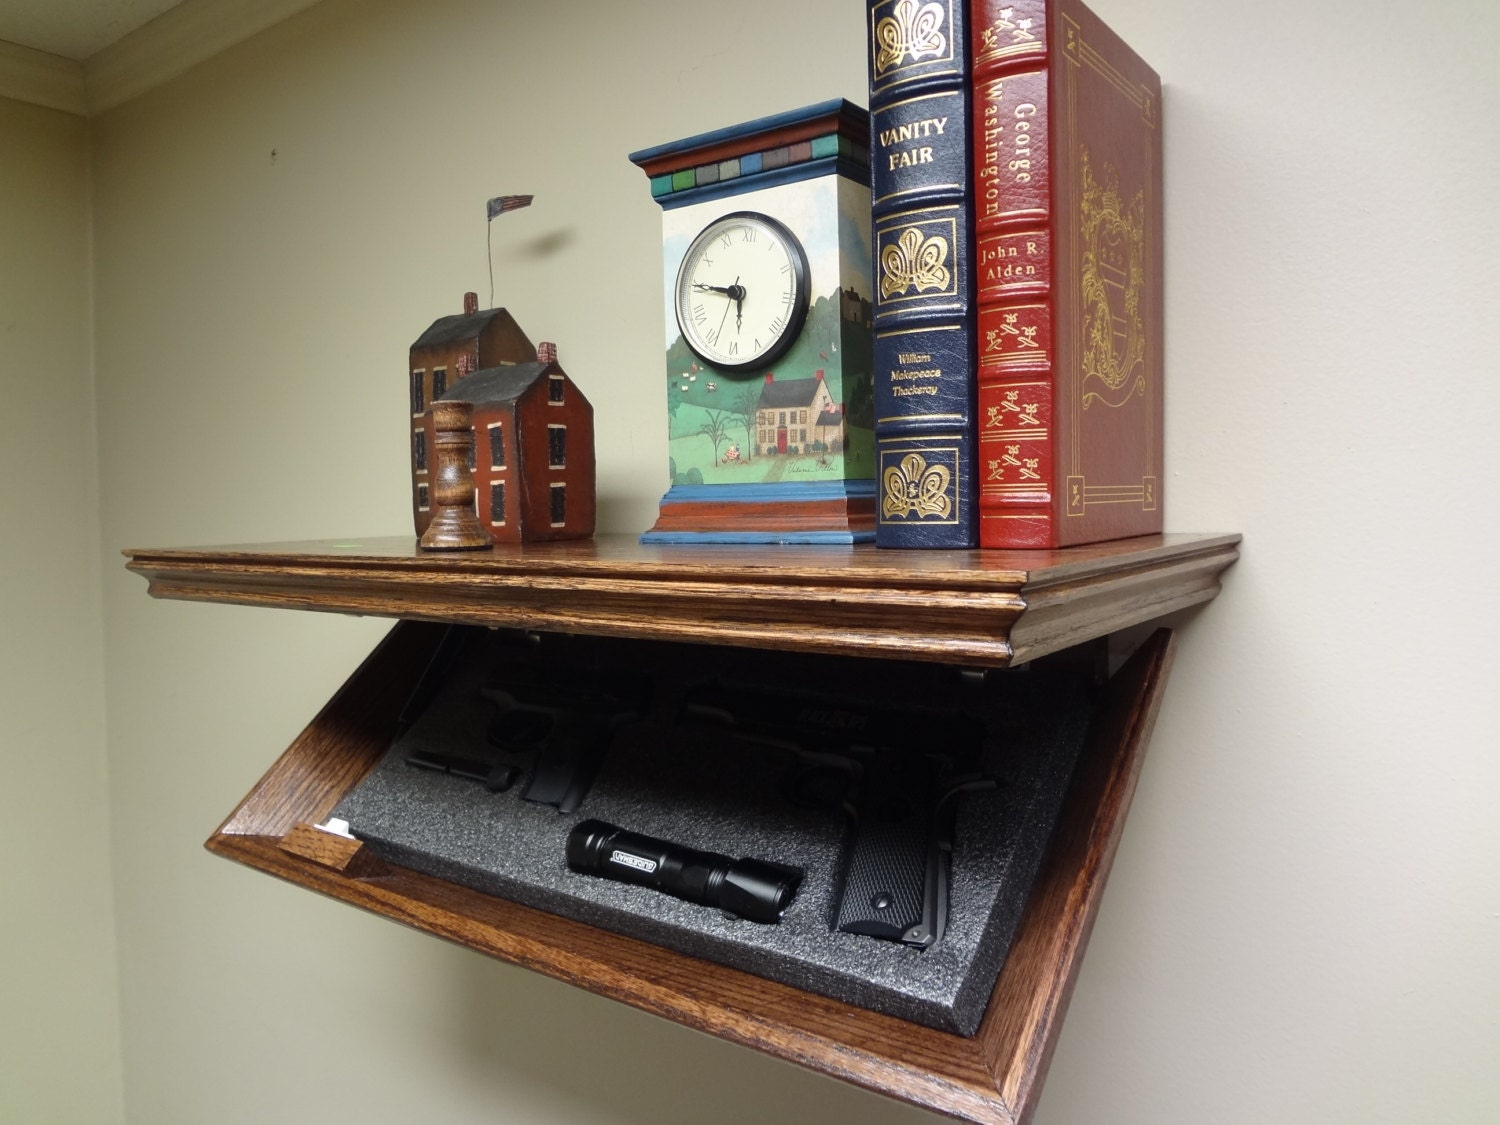 23 Concealment Shelf Oak With Magnetic Lock 23m Timbuck2